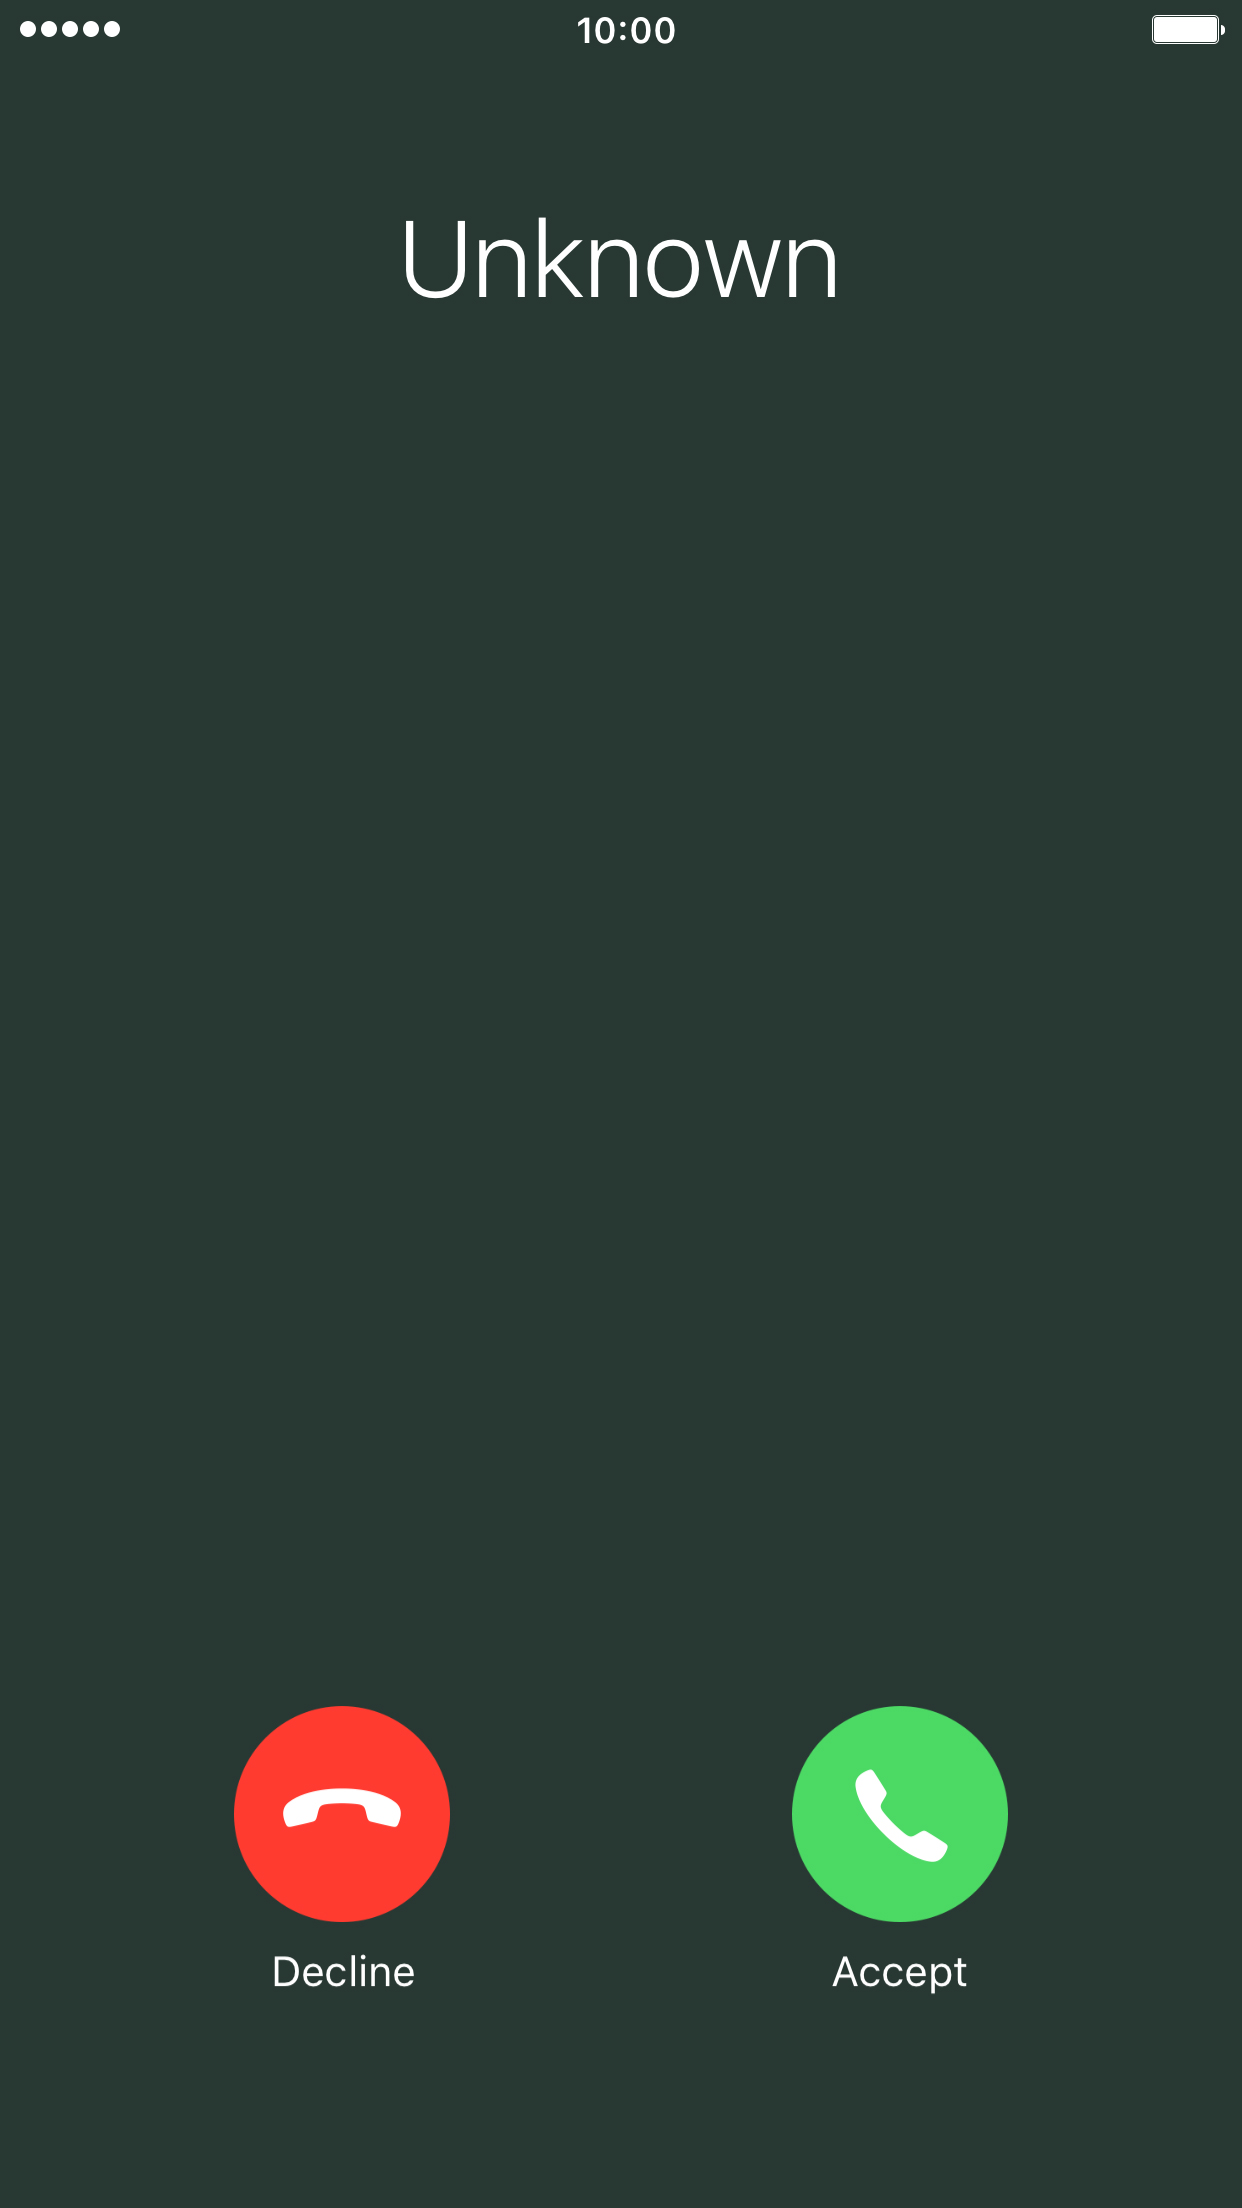 Answer a call - Apple iPhone 7 Plus (iOS 10.0) - Telstra